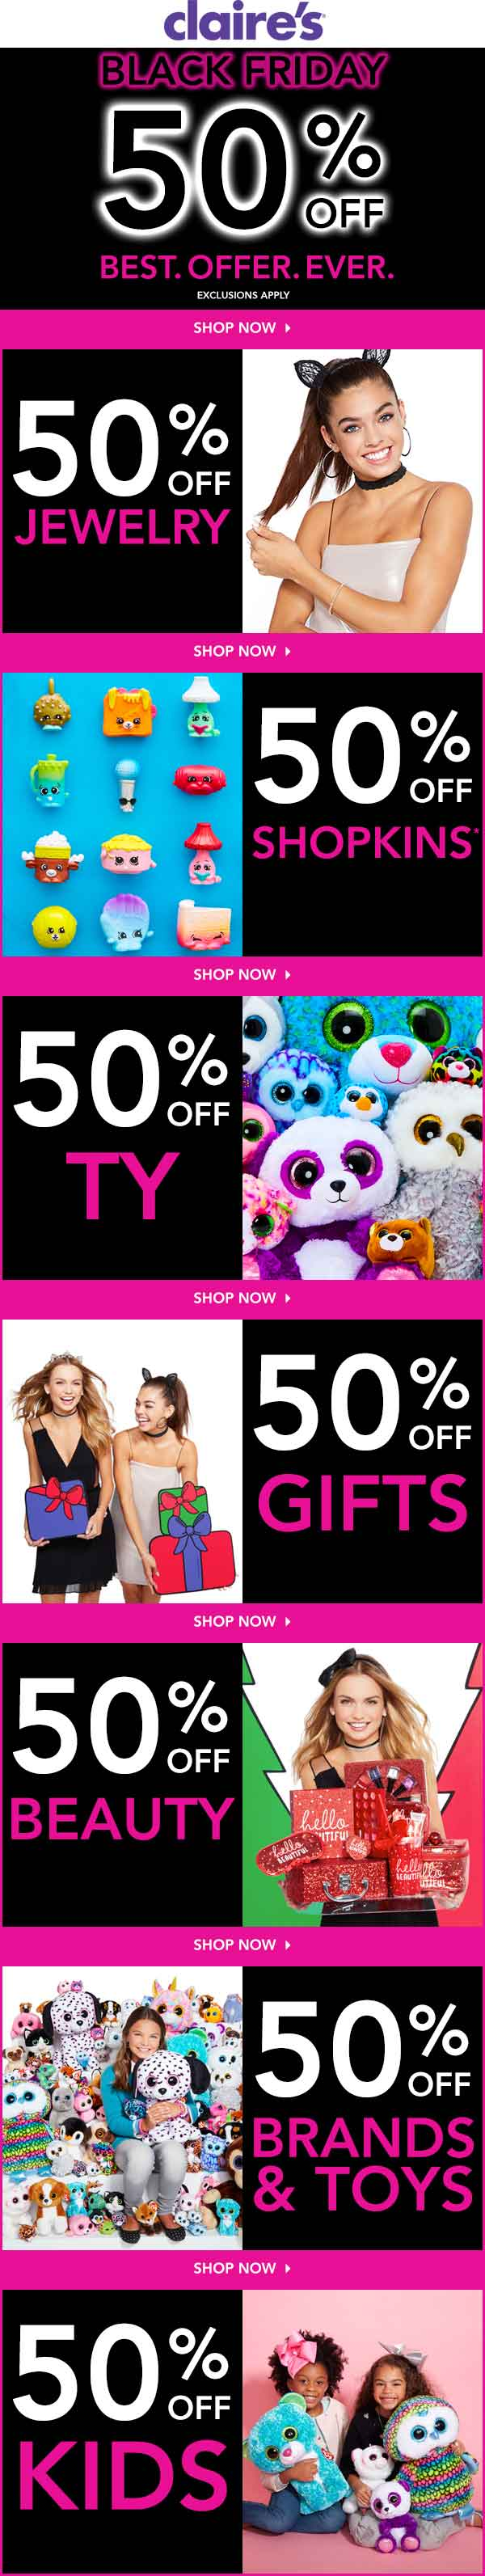 Claires.com Promo Coupon Everything is 50% off online today at Claires